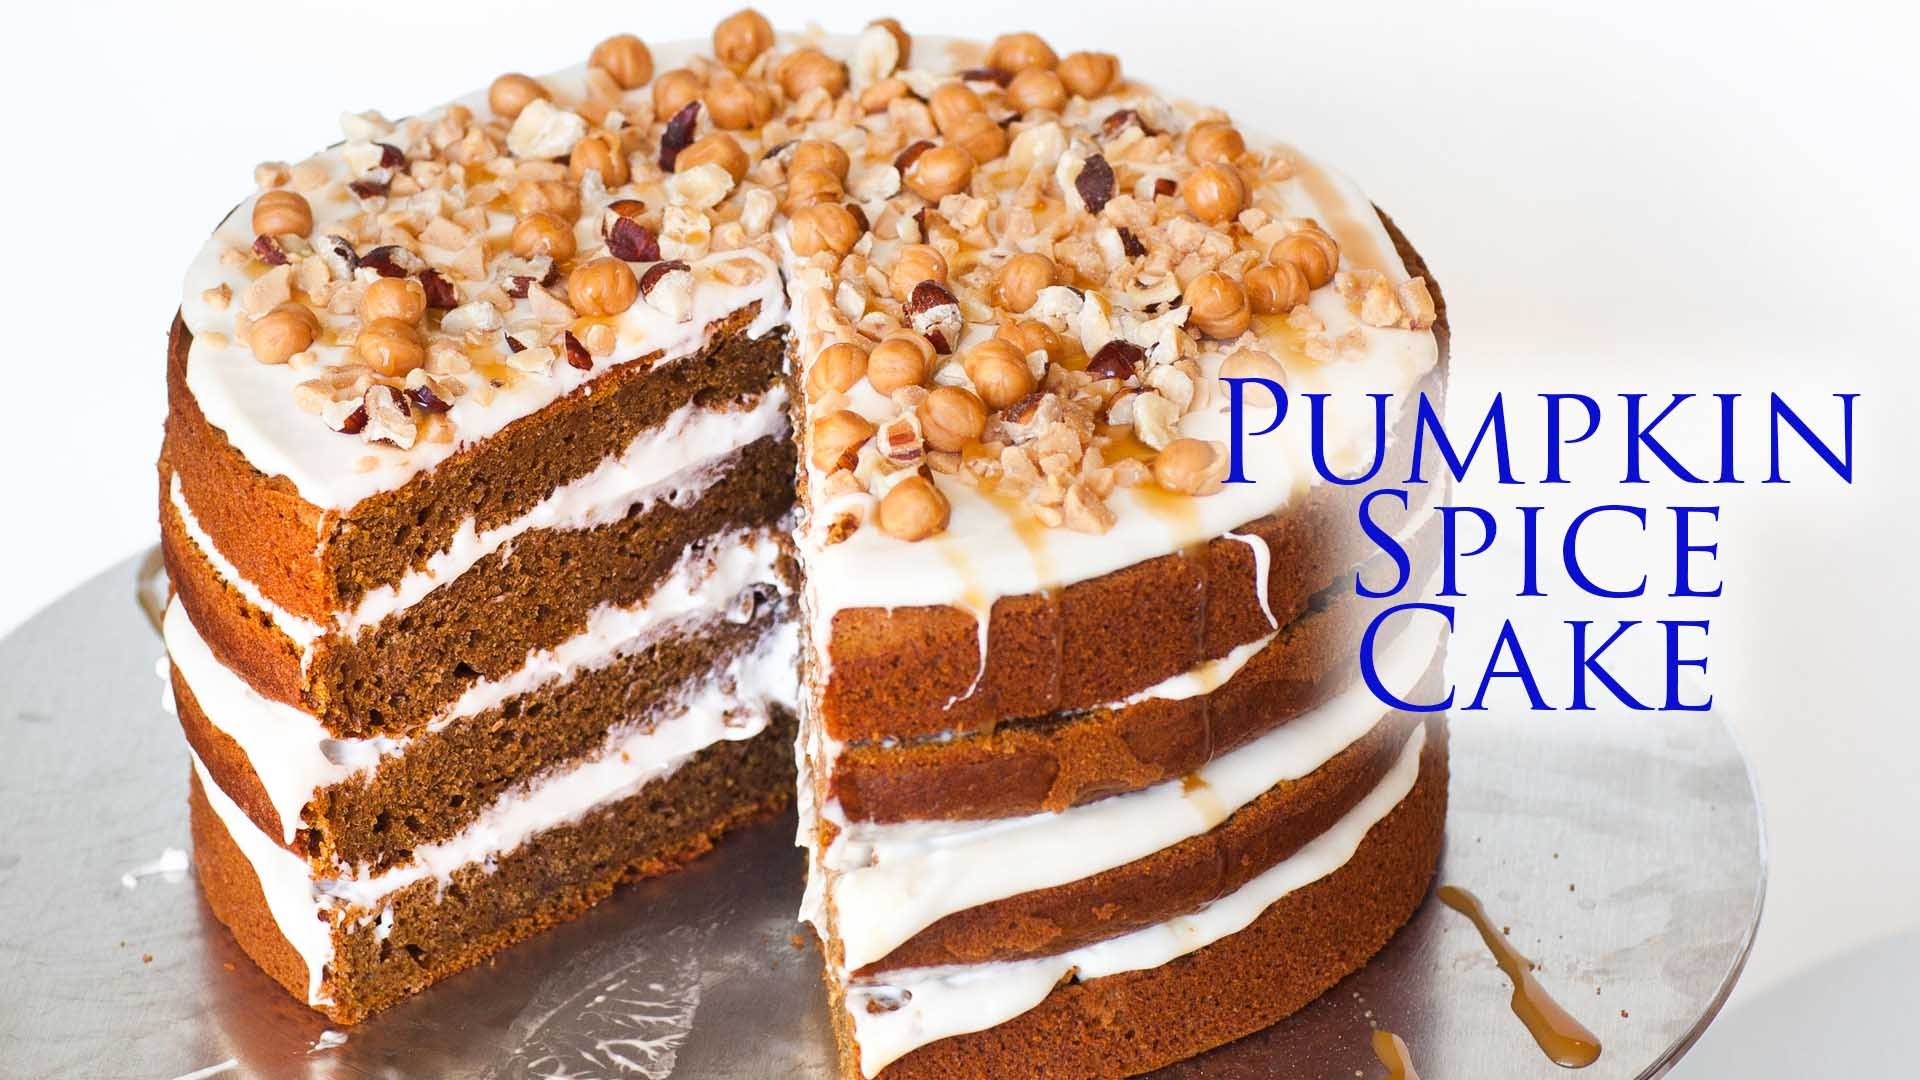 Ring In The Autumn, And Serve This Delicious Pumpkin Spice Cake This Year